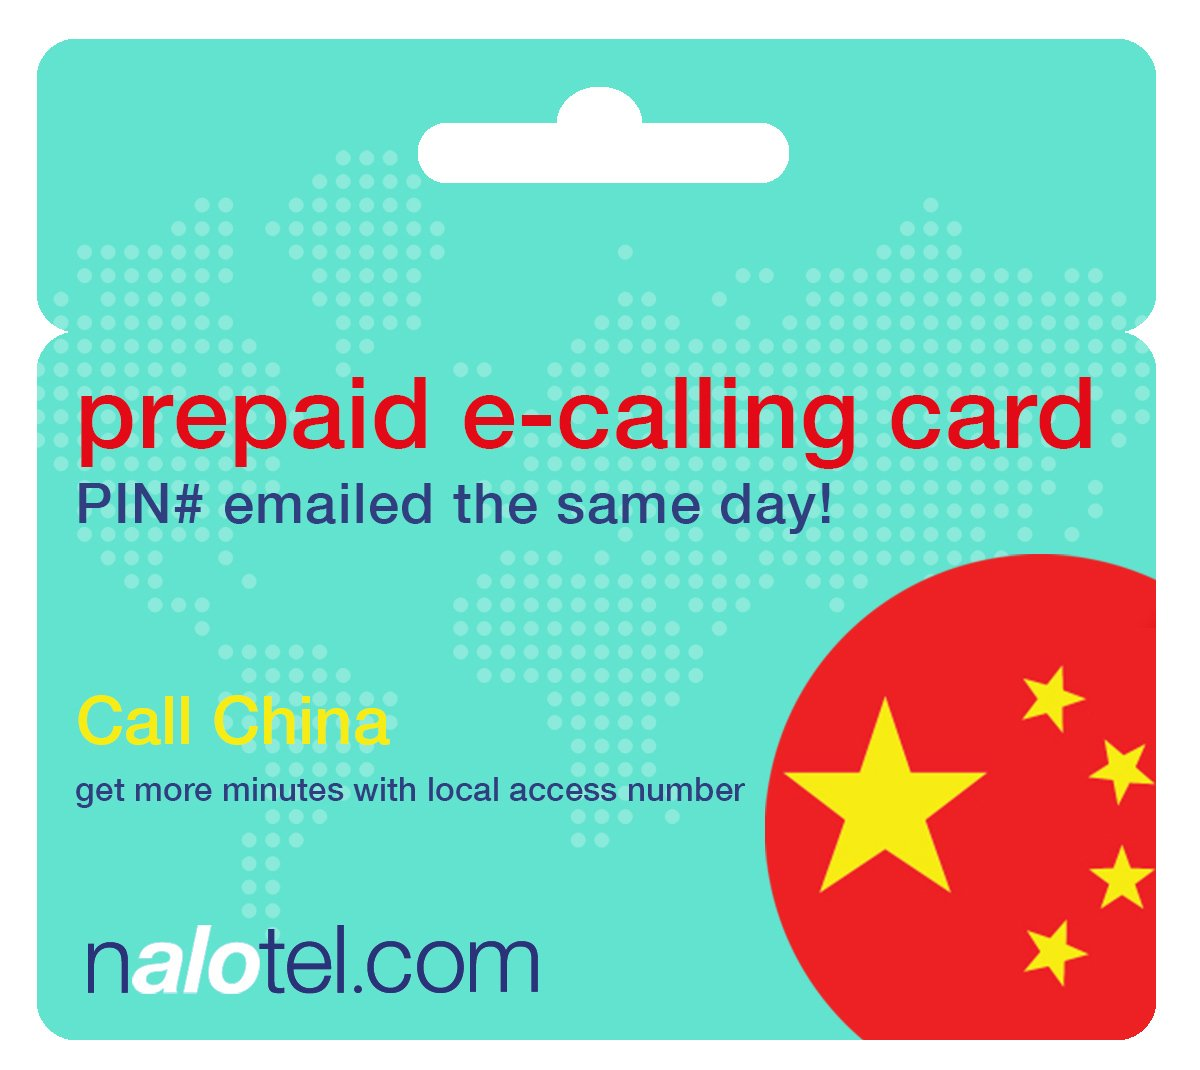 Prepaid Phone Card - Cheap International E-Calling Card $10 for China with same day emailed PIN, no postage necessary